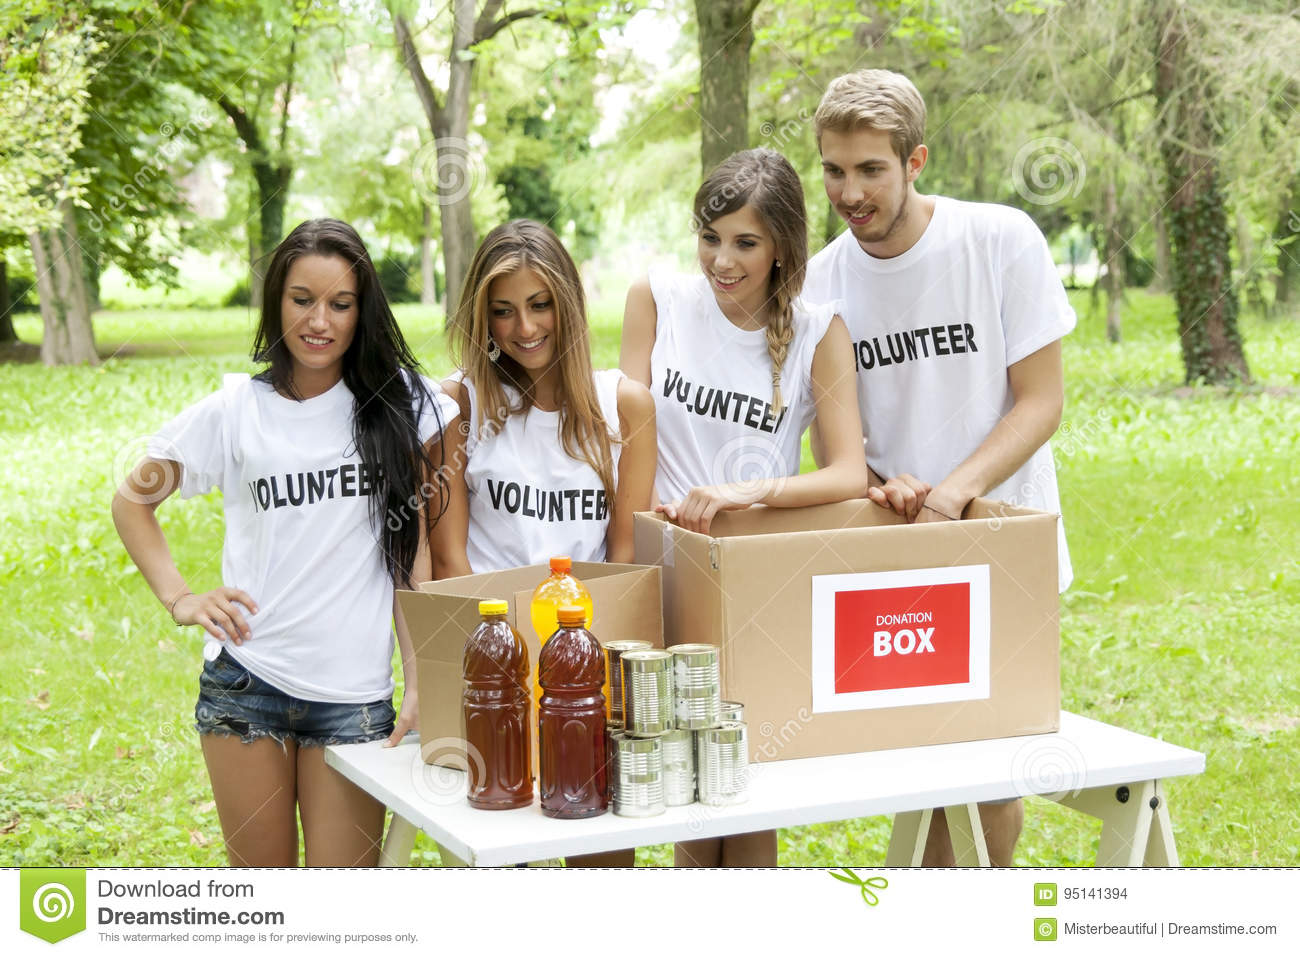 donors-supporters-of-free-teens-rate-midget-photos